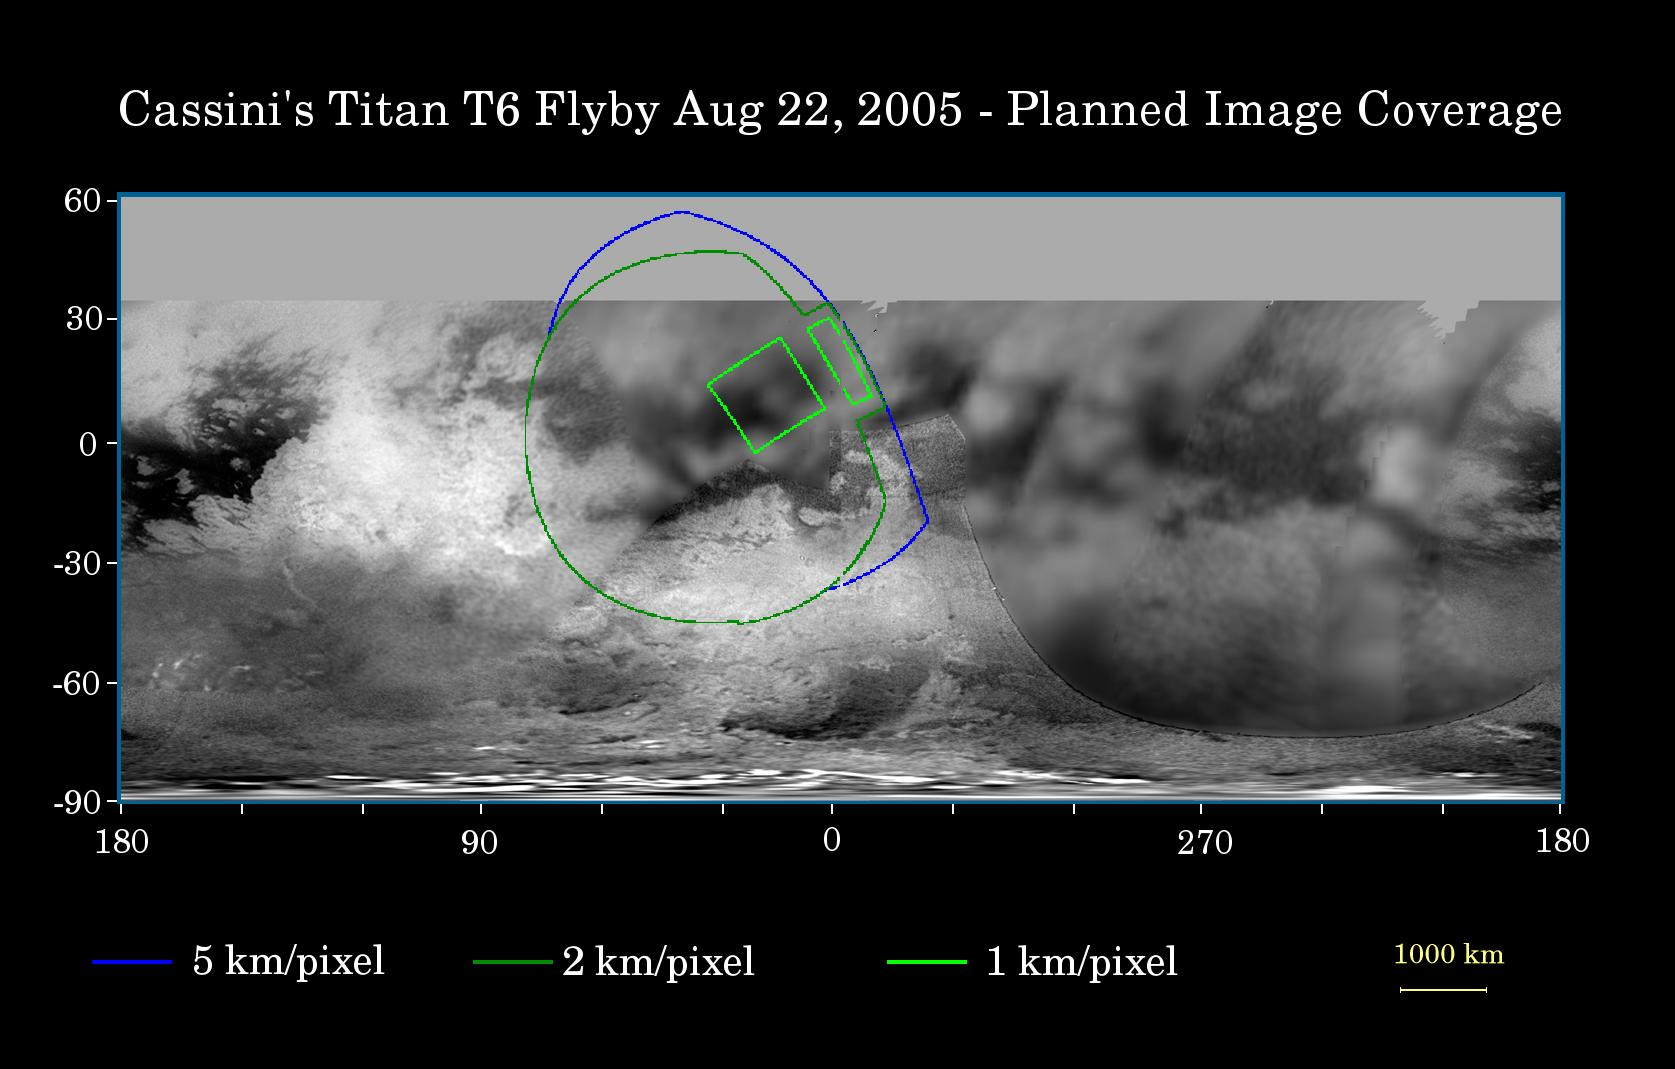 This map of Titan's surface illustrates the regions that will be imaged by Cassini during the spacecraft's close flyby of Titan on Aug. 22, 2005.